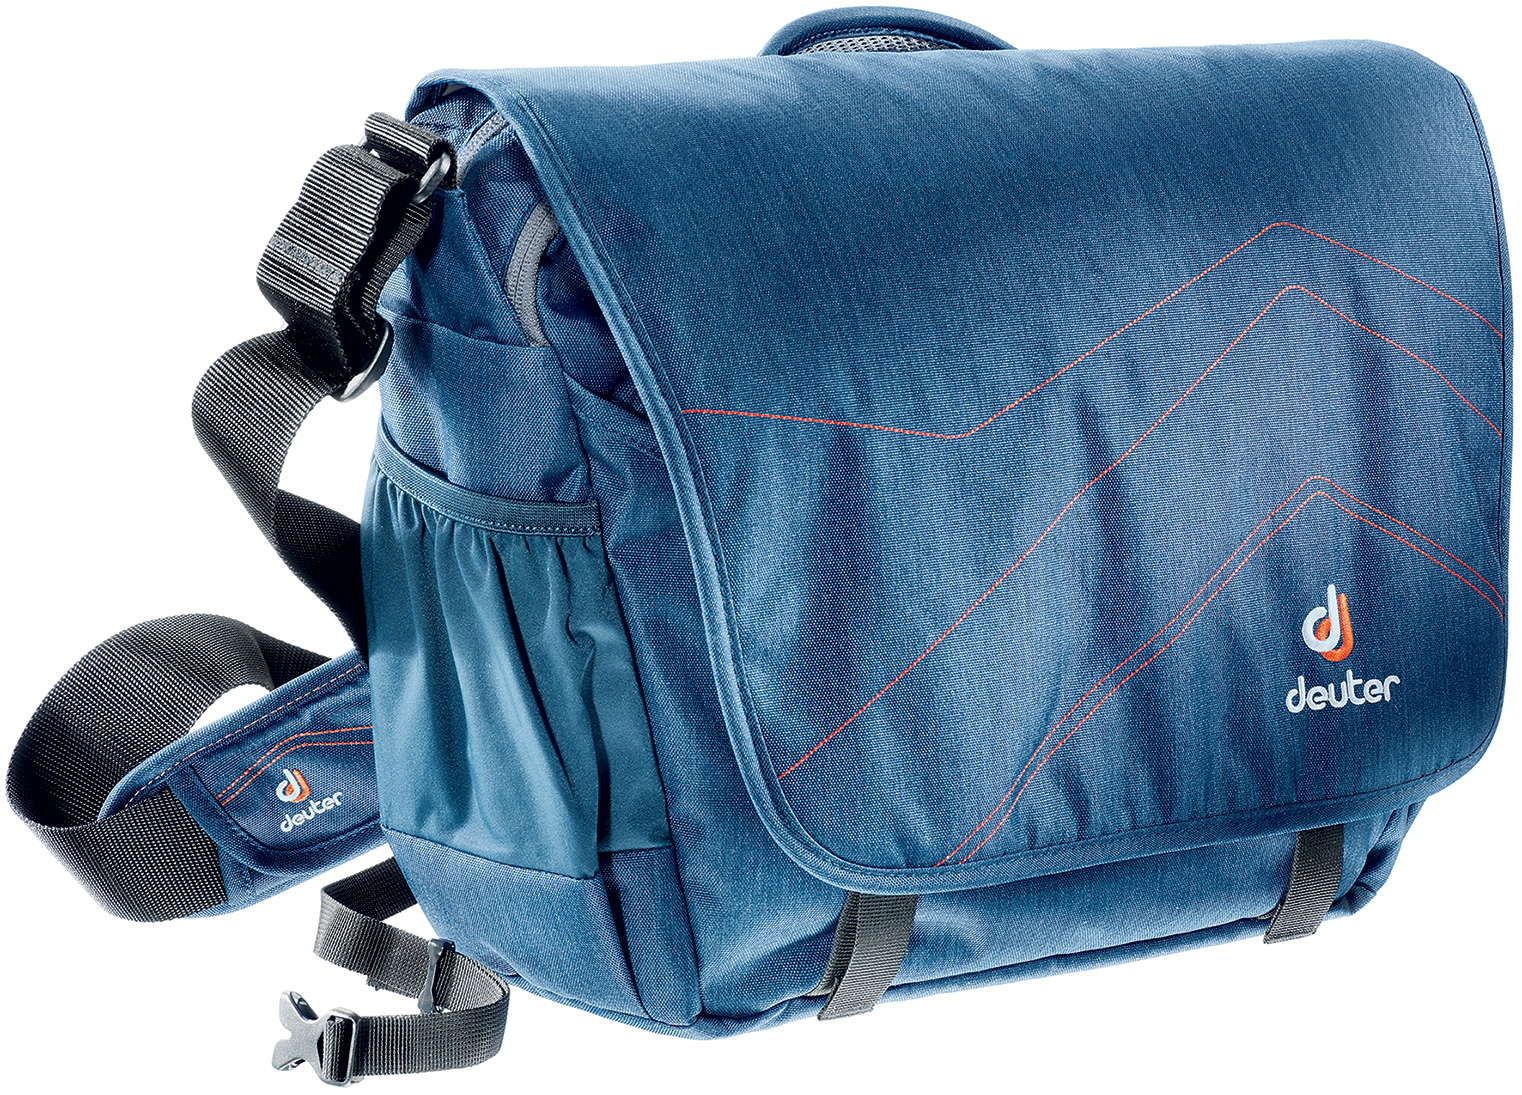 Сумка на плечо Deuter 2015 Shoulder bags Operate III midnight dresscode